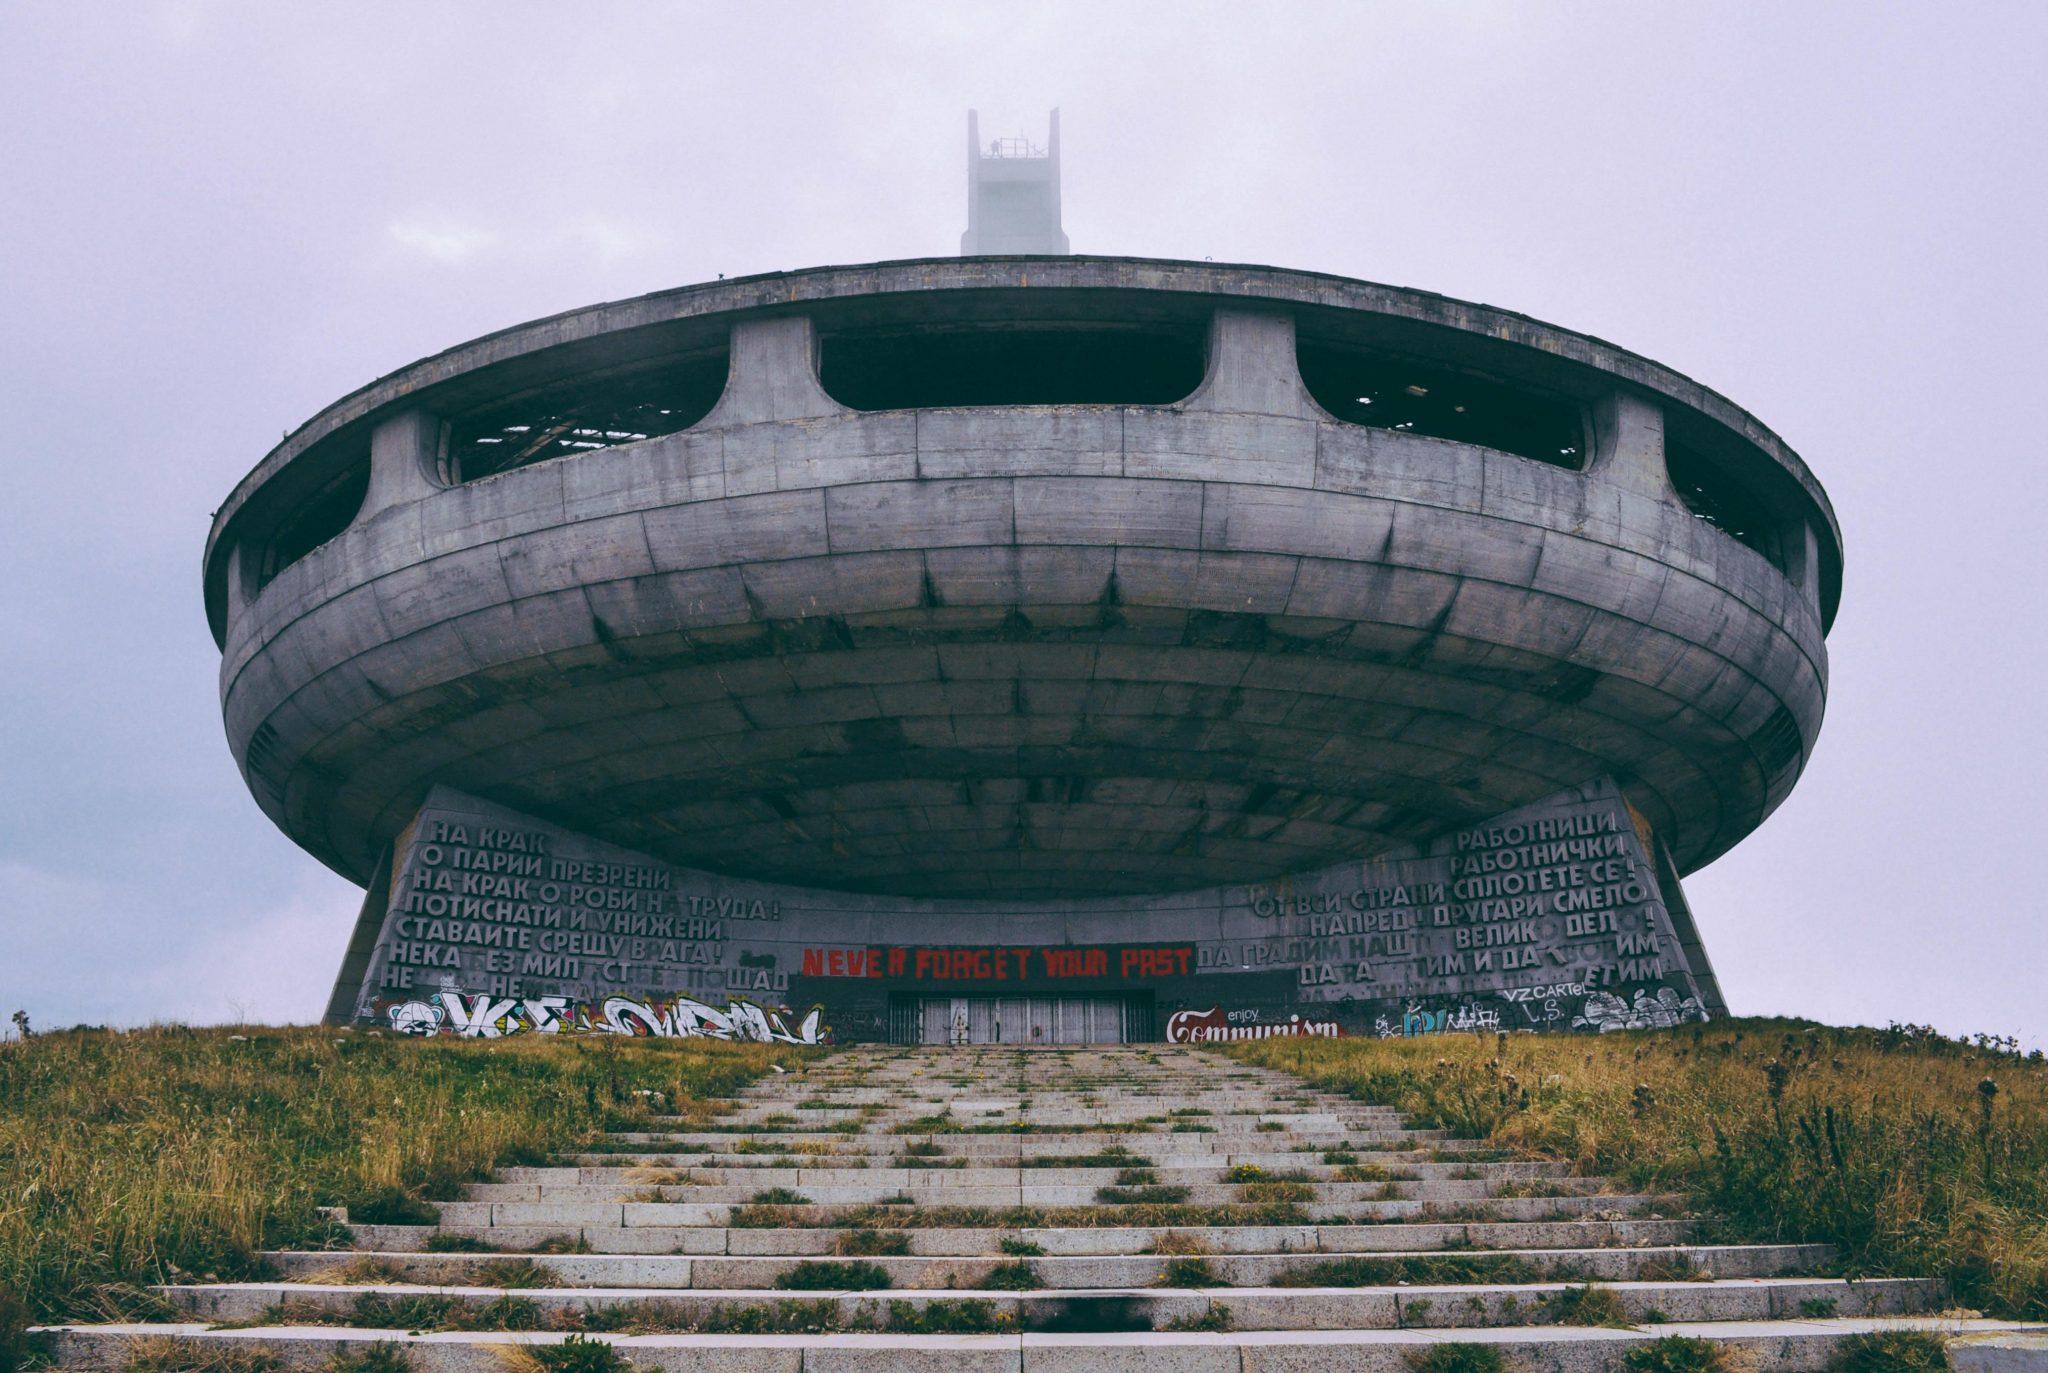 Increadable abandoned communist building of gargantuan proportions near Veliko Tarnovo